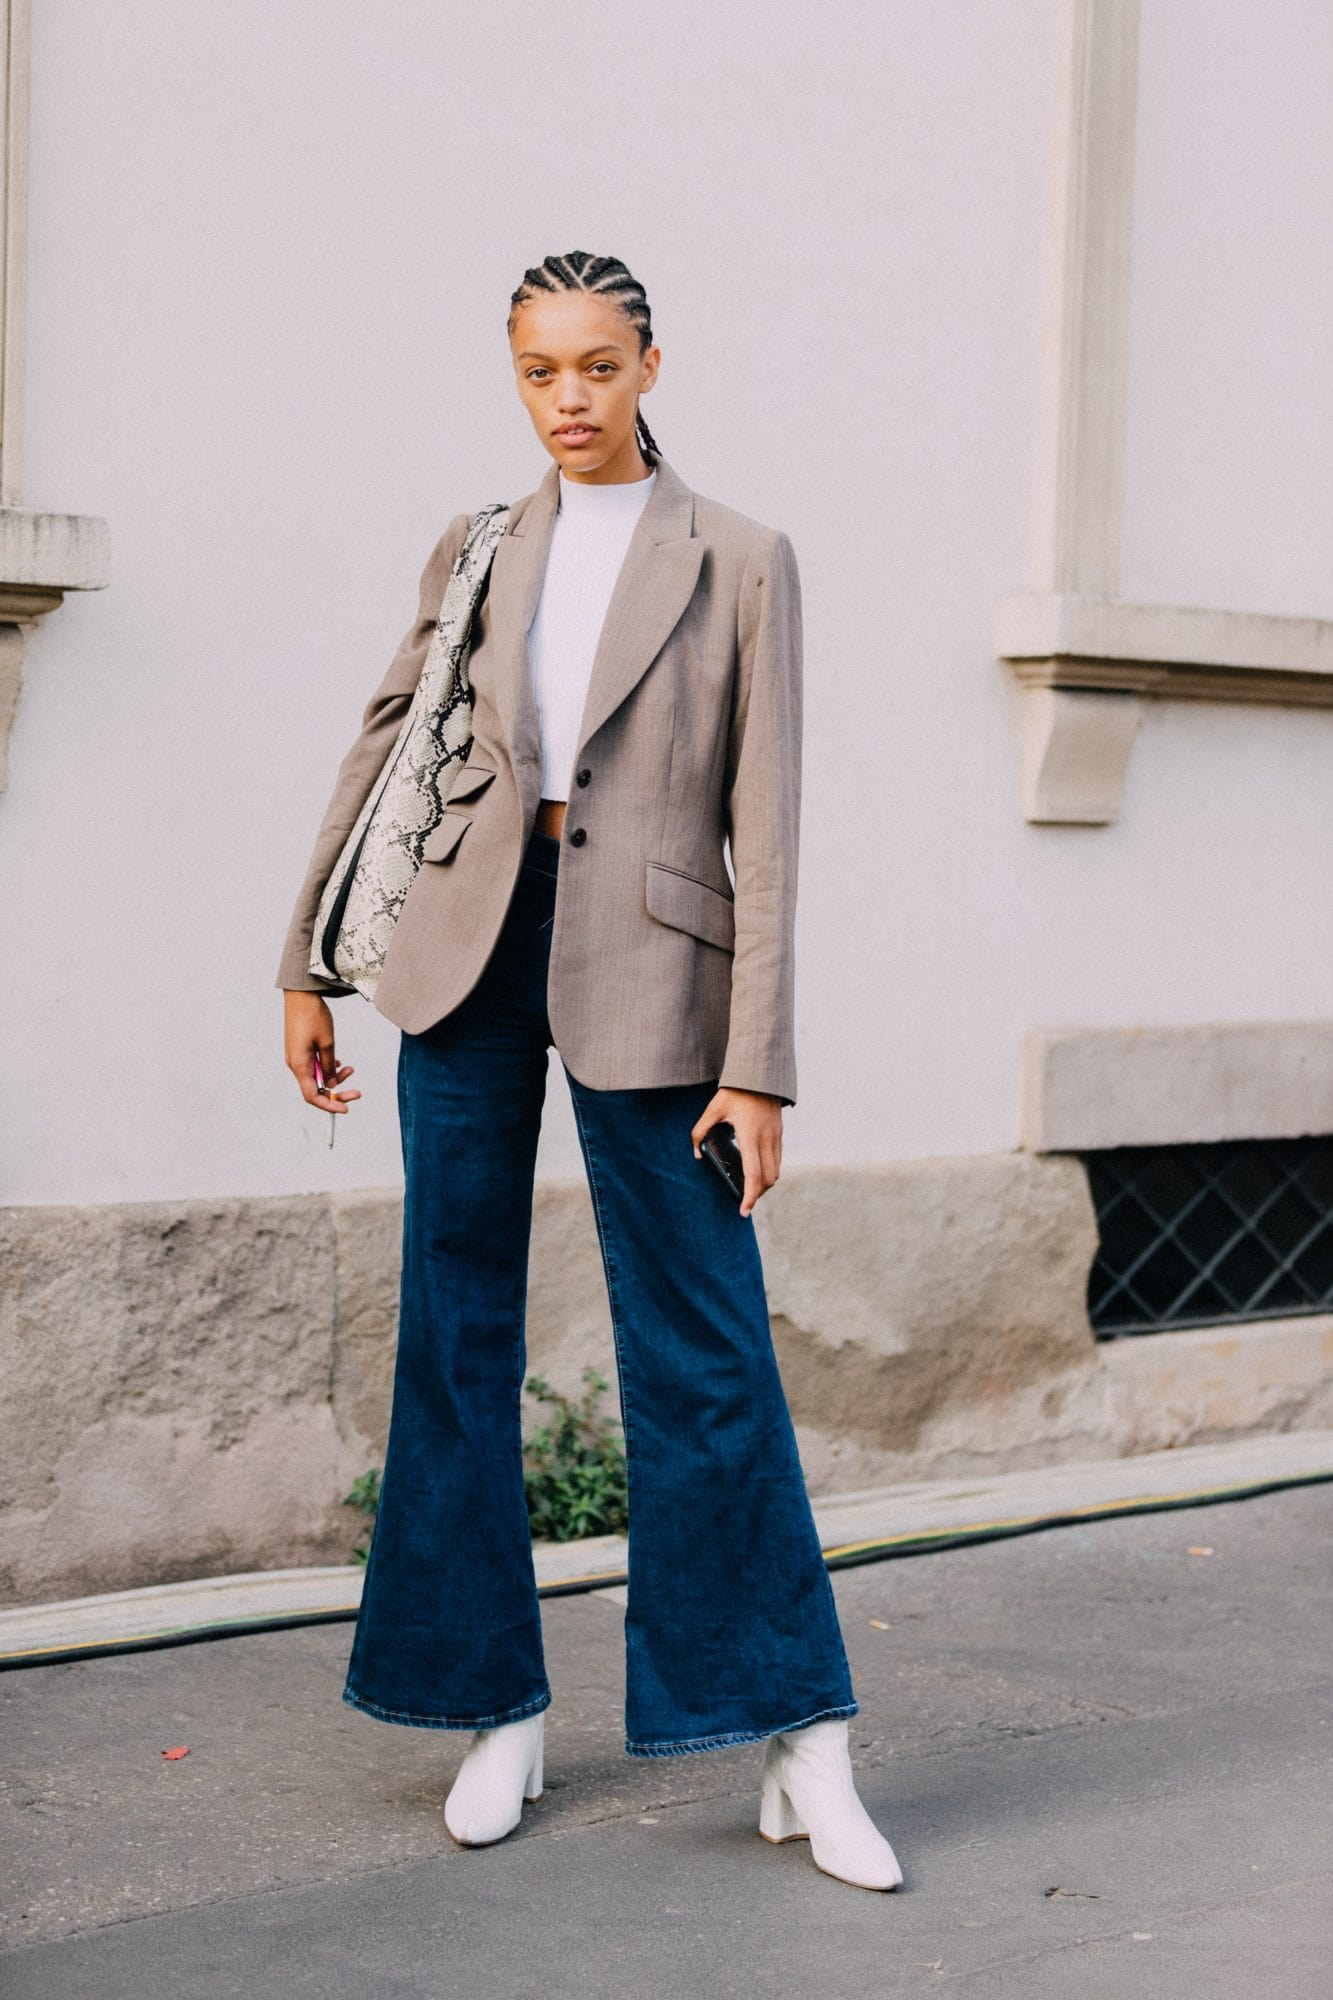 How to wear ankle boots with skinny jeans